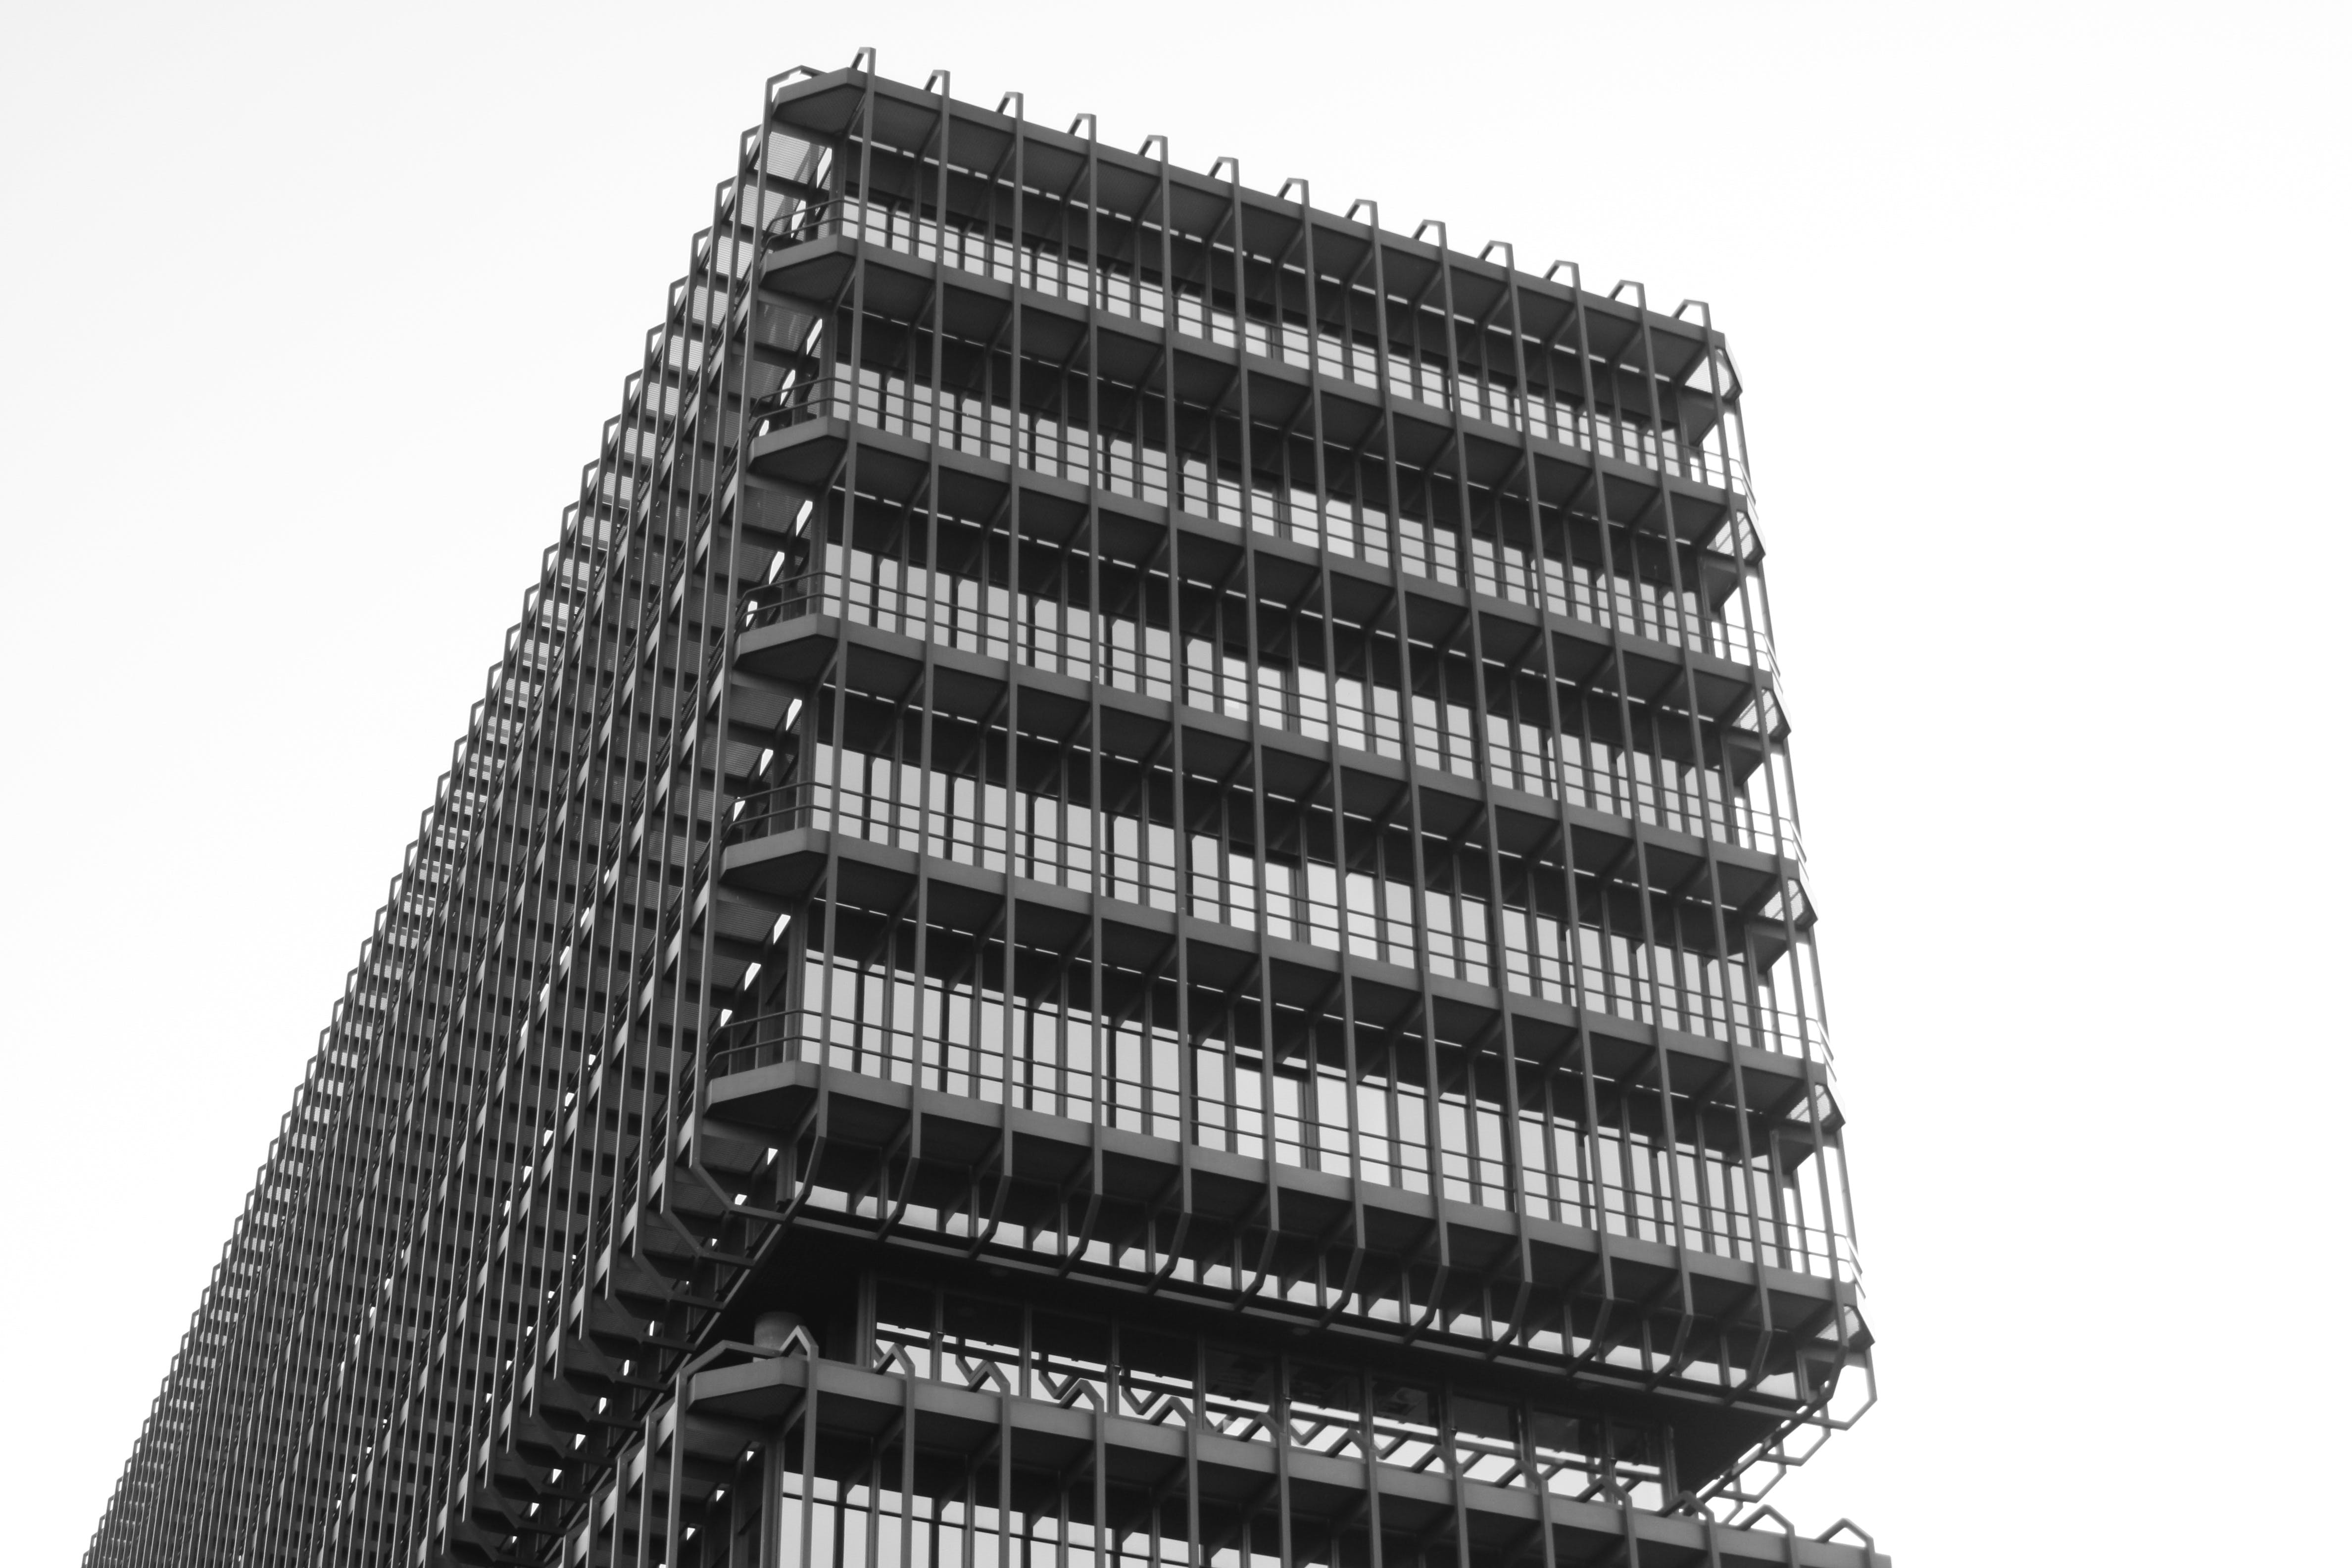 architecture, black-and-white, building